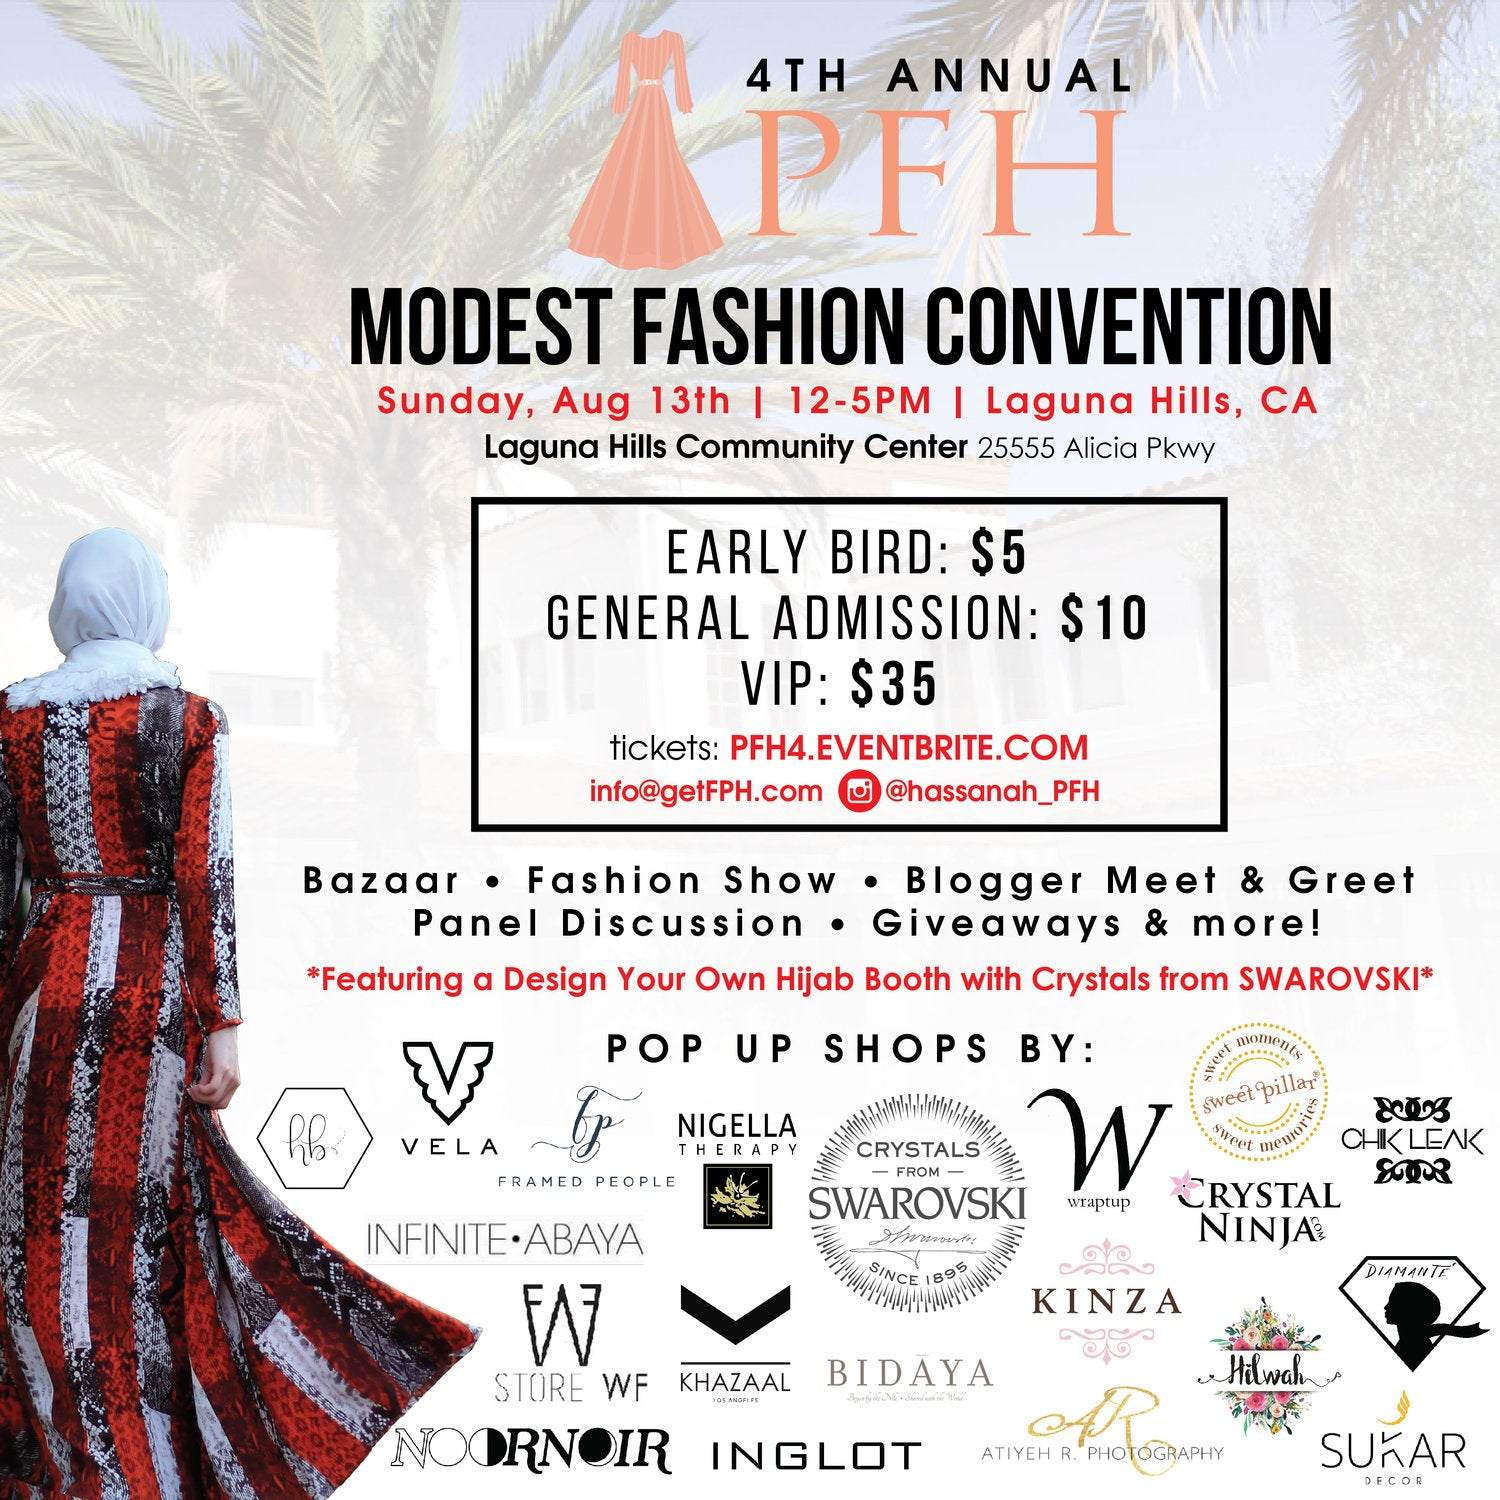 4th Annual PFH Modest Fashion Convention